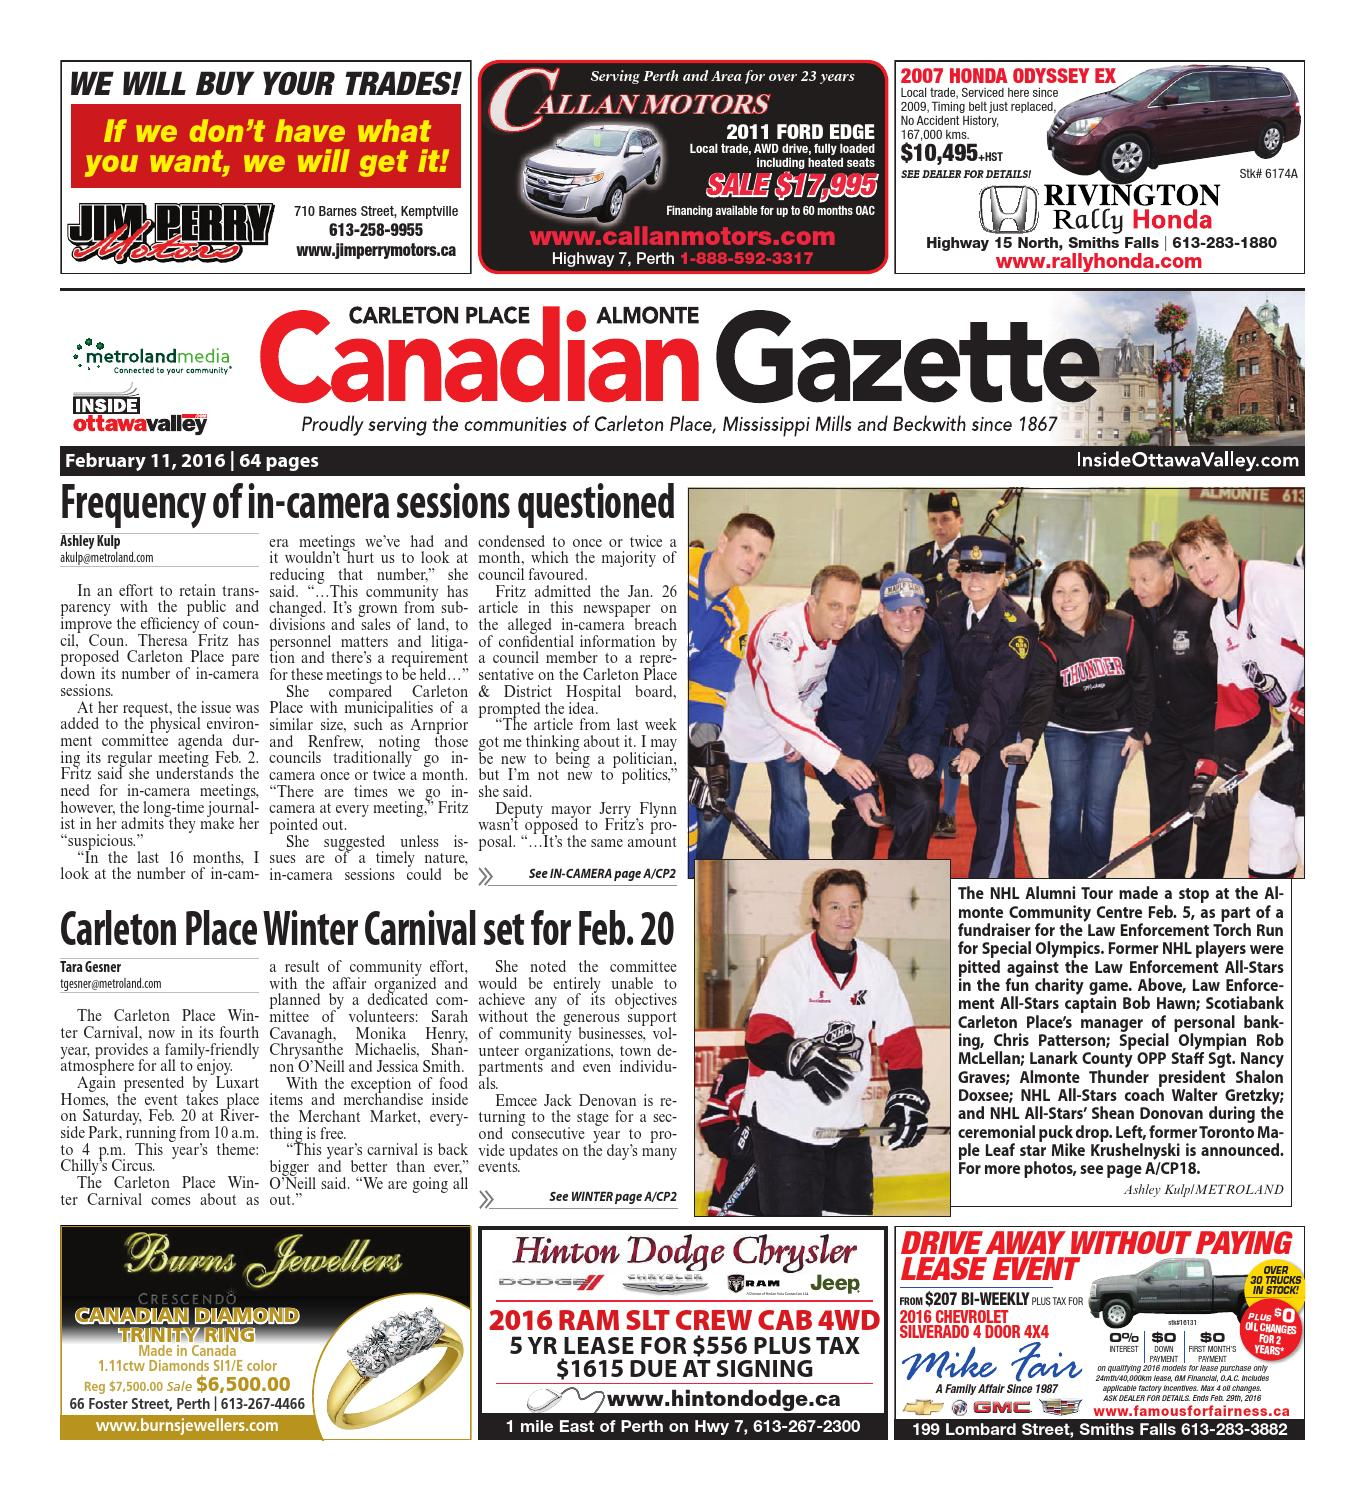 Almontecarletonplace021116 by metroland east almonte carleton almontecarletonplace021116 by metroland east almonte carleton place canadian gazette issuu fandeluxe Gallery